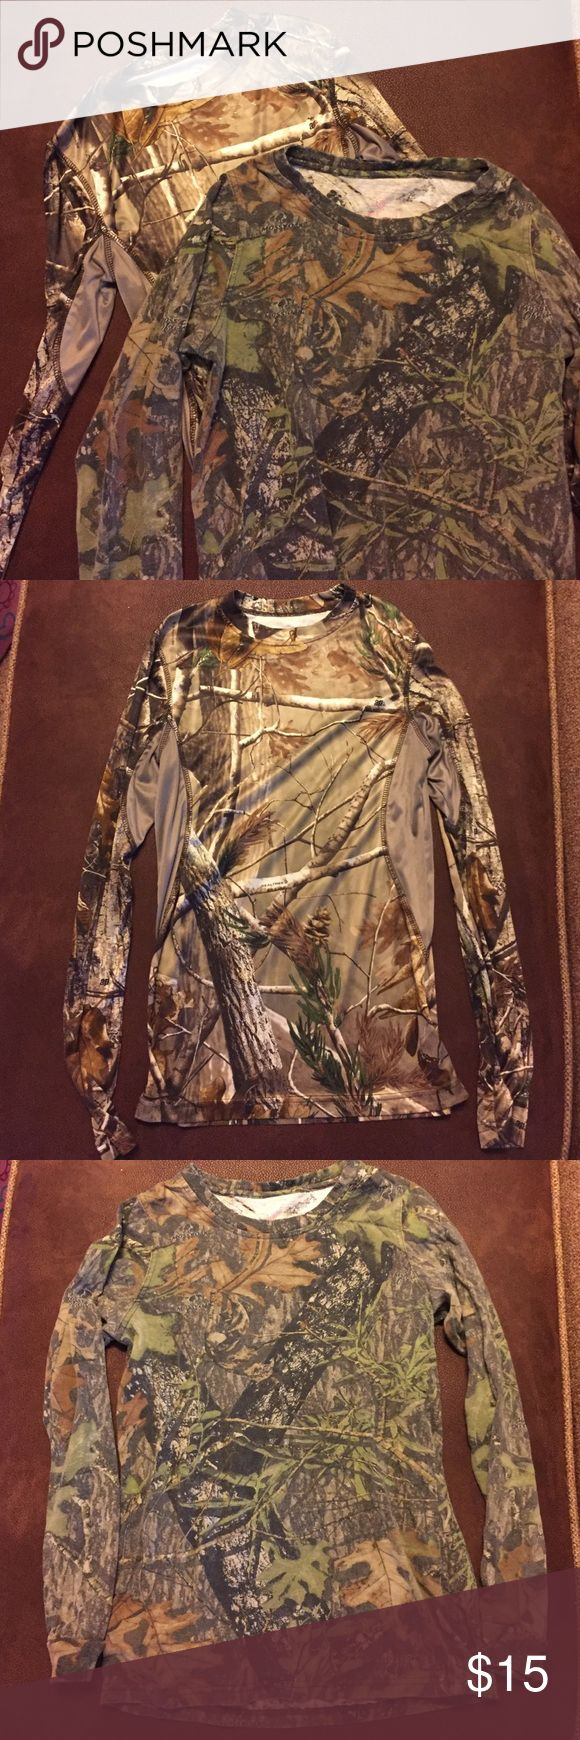 Bundle of camo shirts Great condition! Bundle of woman's camo long sleeve shirts. Size small. One is 100% cotton and one is 100% polyester. Brand Game Winner. Tops Tees - Long Sleeve